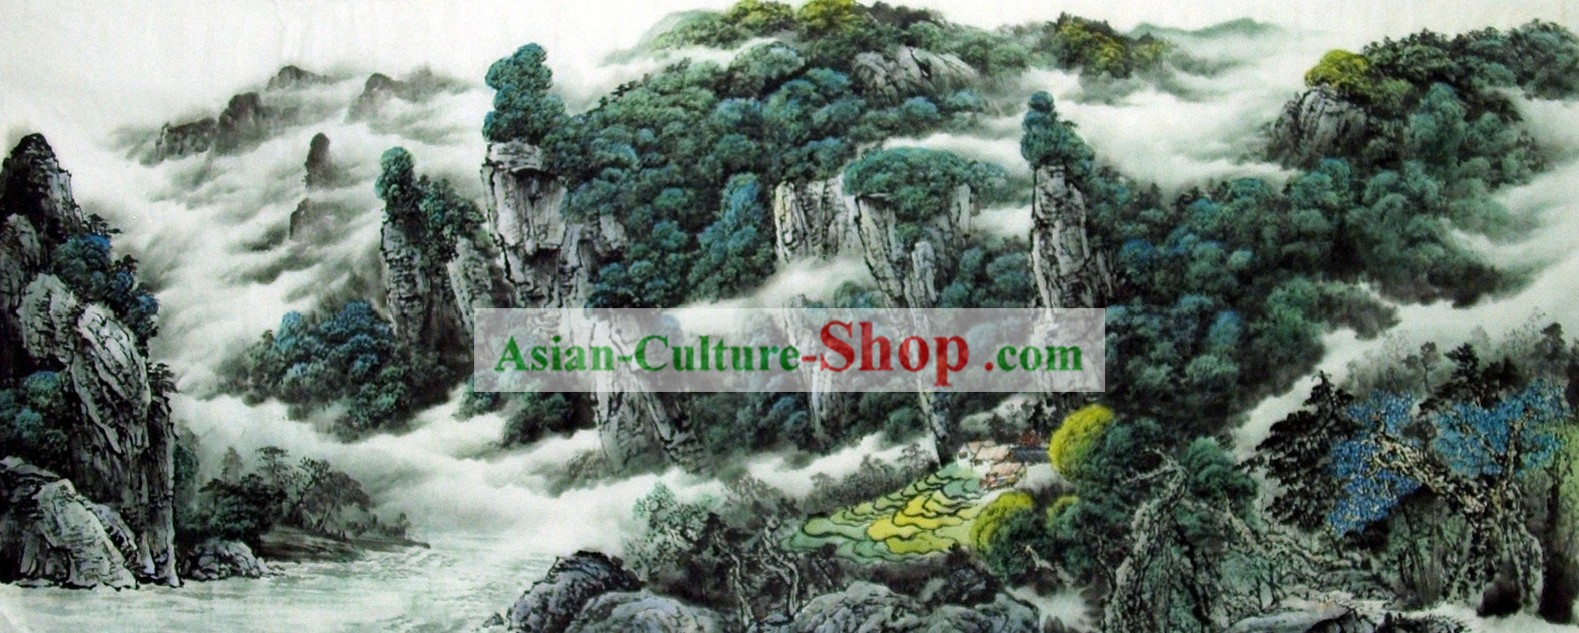 Chinese Landscape Painting - Guilin Scene